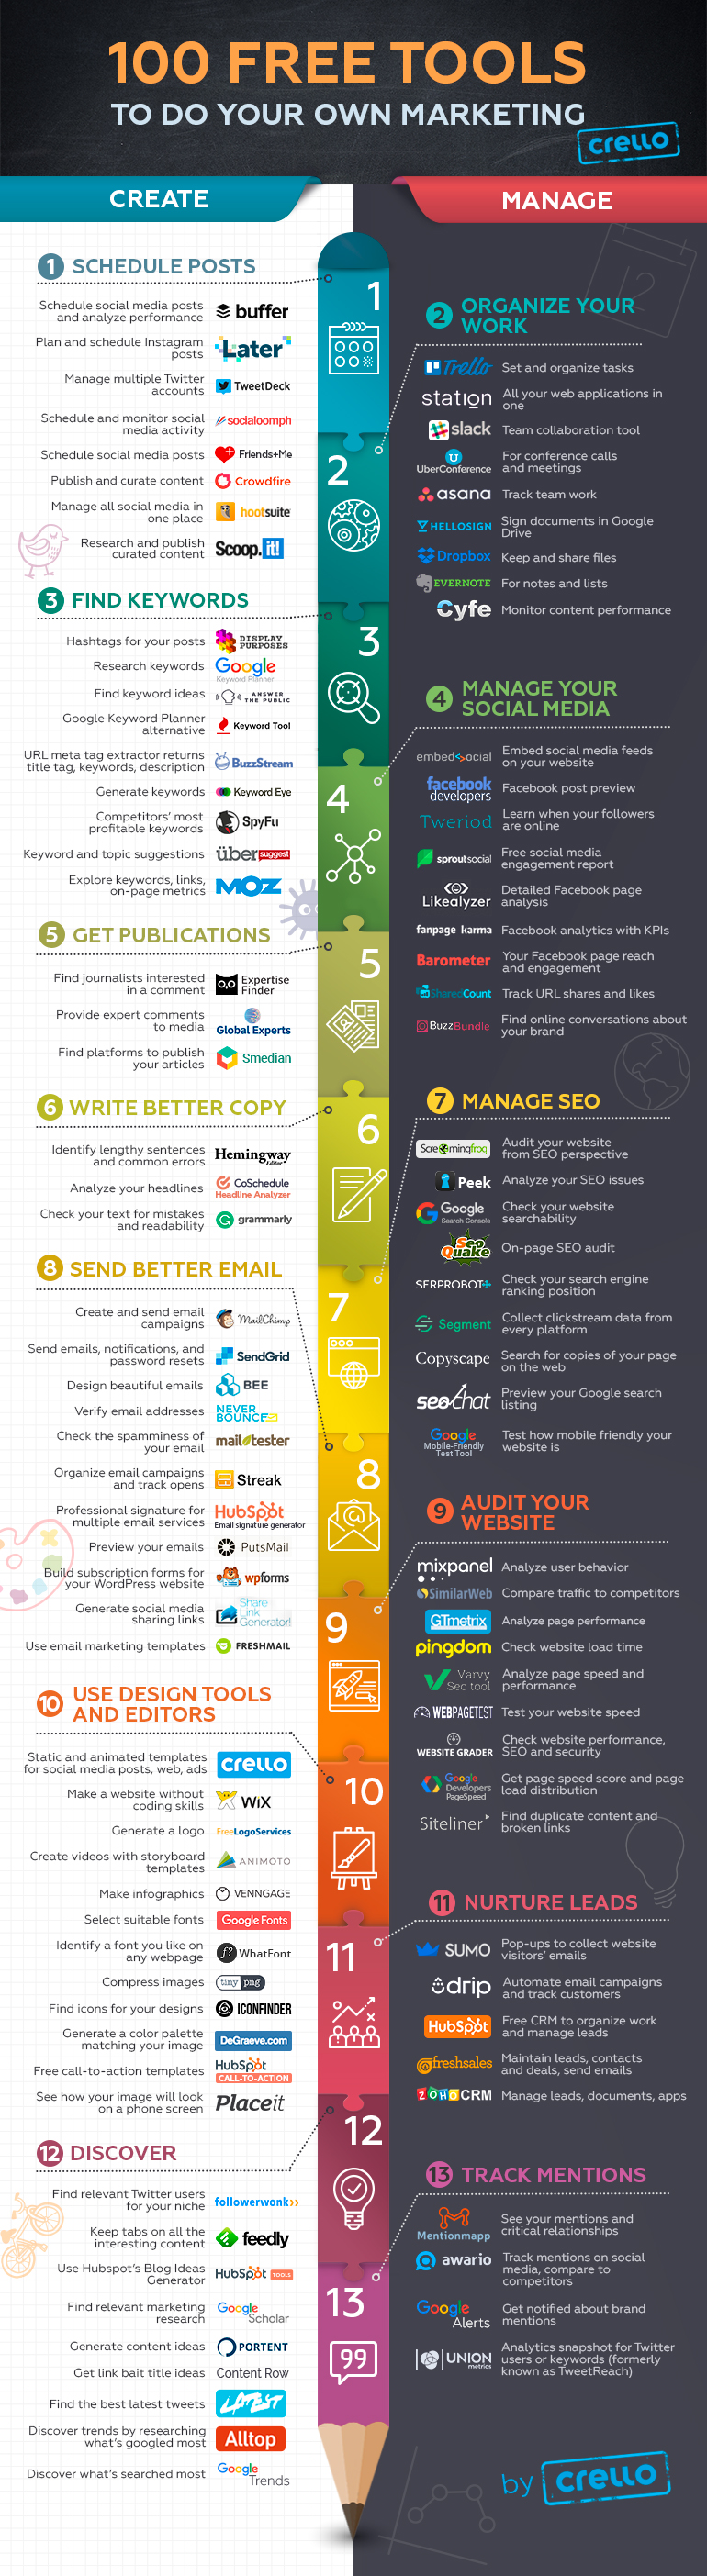 100_free_marketing_tools_info.png